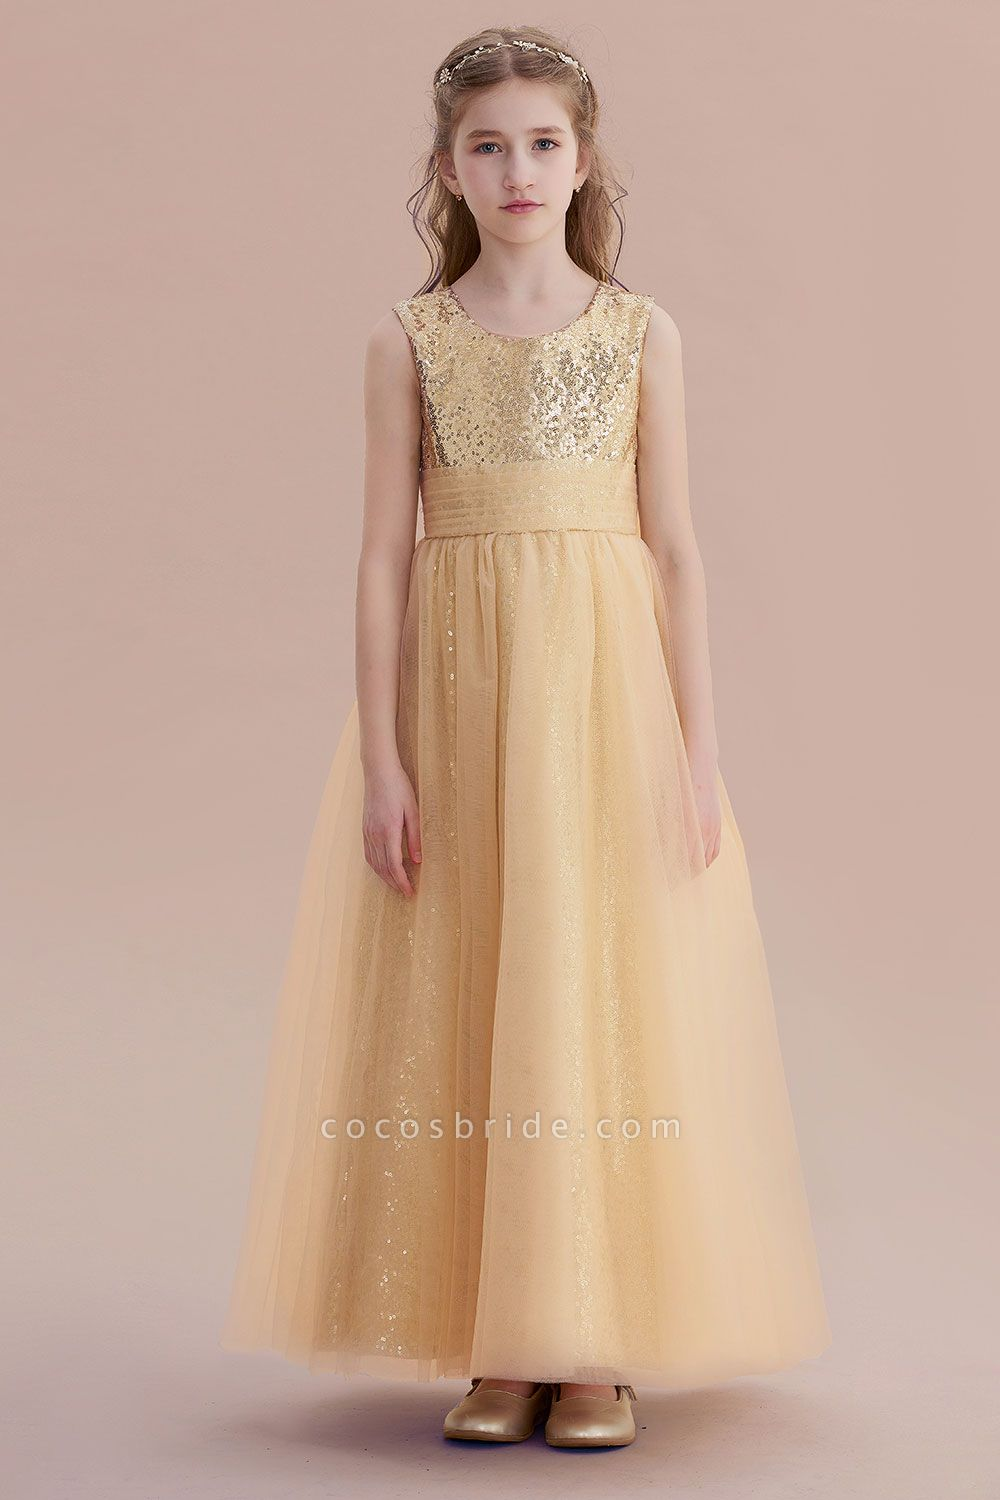 Awesome Sequins Tulle Flower Girl Dress